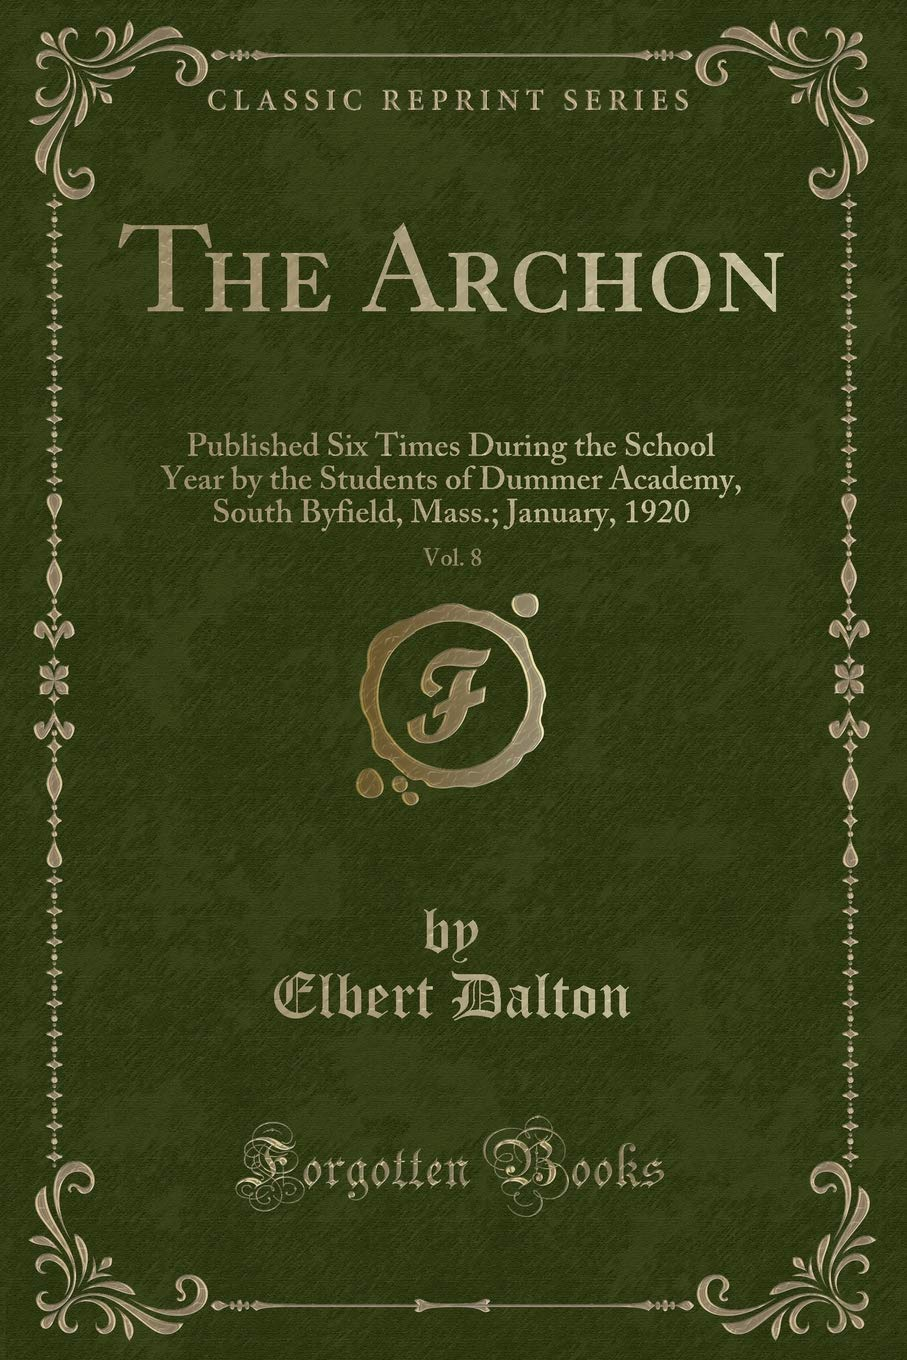 The Archon, Vol. 8: Published Six Times During the School Year by the Students of Dummer Academy, South Byfield, Mass.; January, 1920 (Classic Reprint) PDF